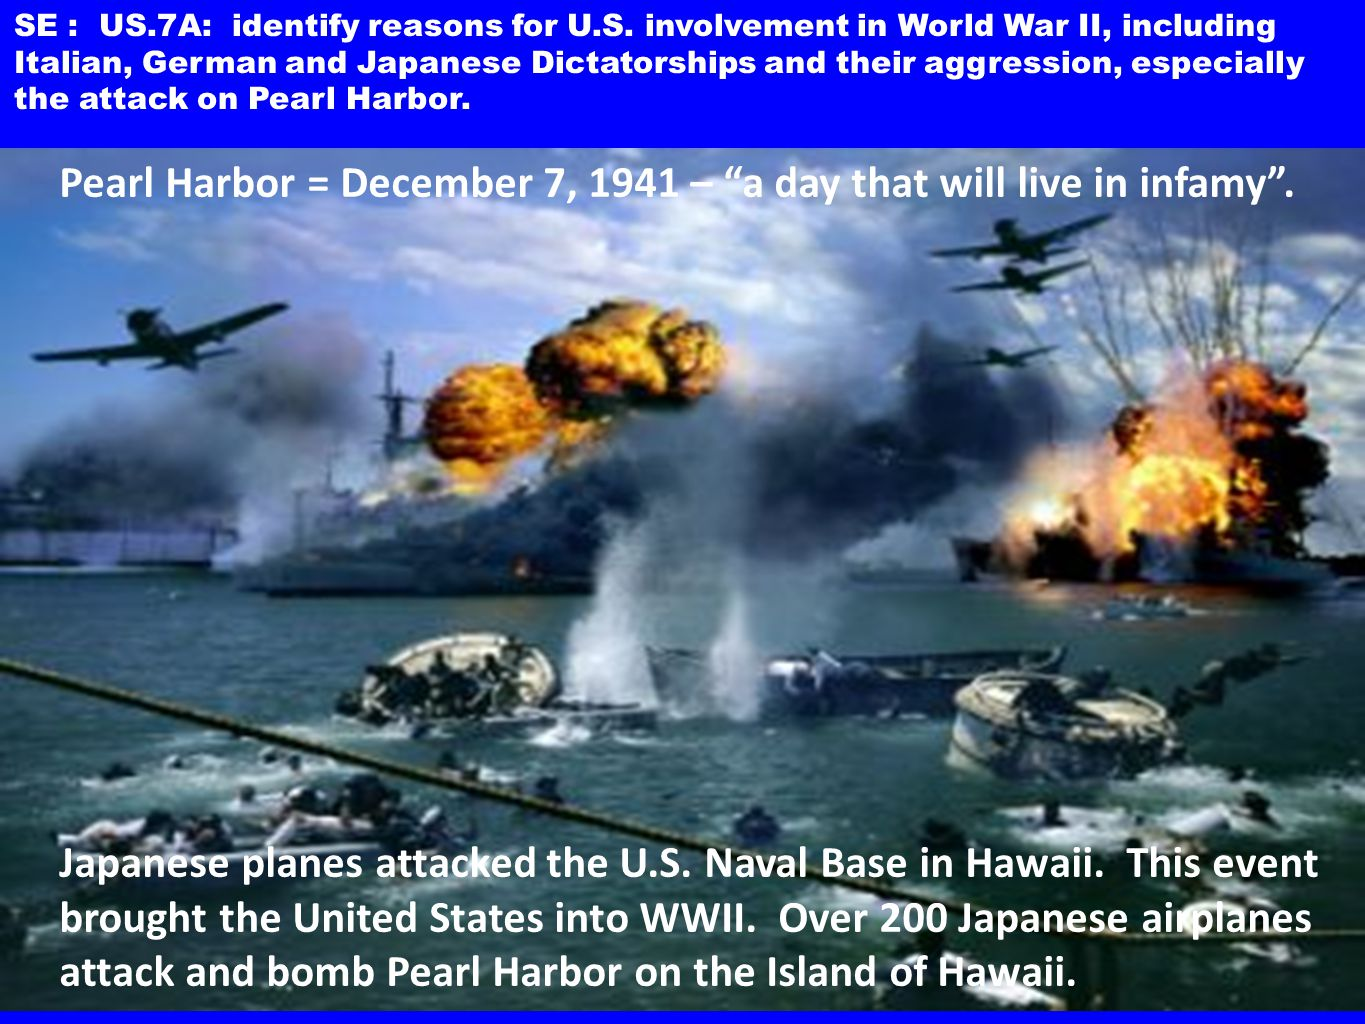 december 7 1941 a day that will live in infamy A day after the attack on pearl harbor, the us enters wwii  on the afternoon of  december 7, 1941, a meeting between  date which will live in infamy:  roosevelt addresses the pearl harbor attack (1:45-4:40 min).